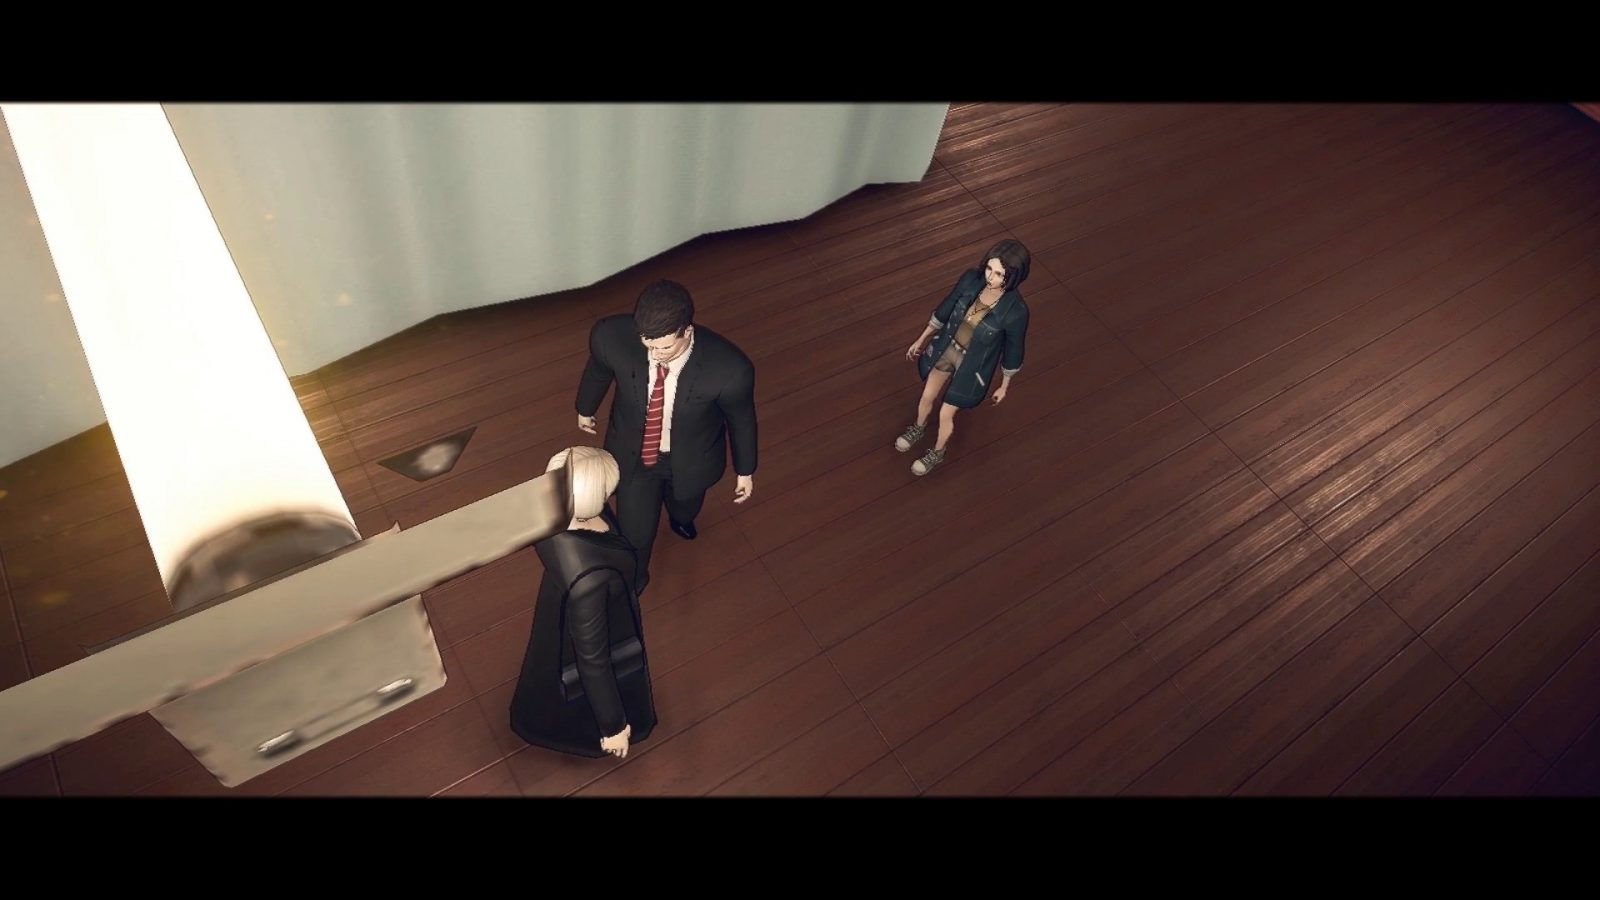 Deadly Premonition 2: A Blessing in Disguise Launches Next Year